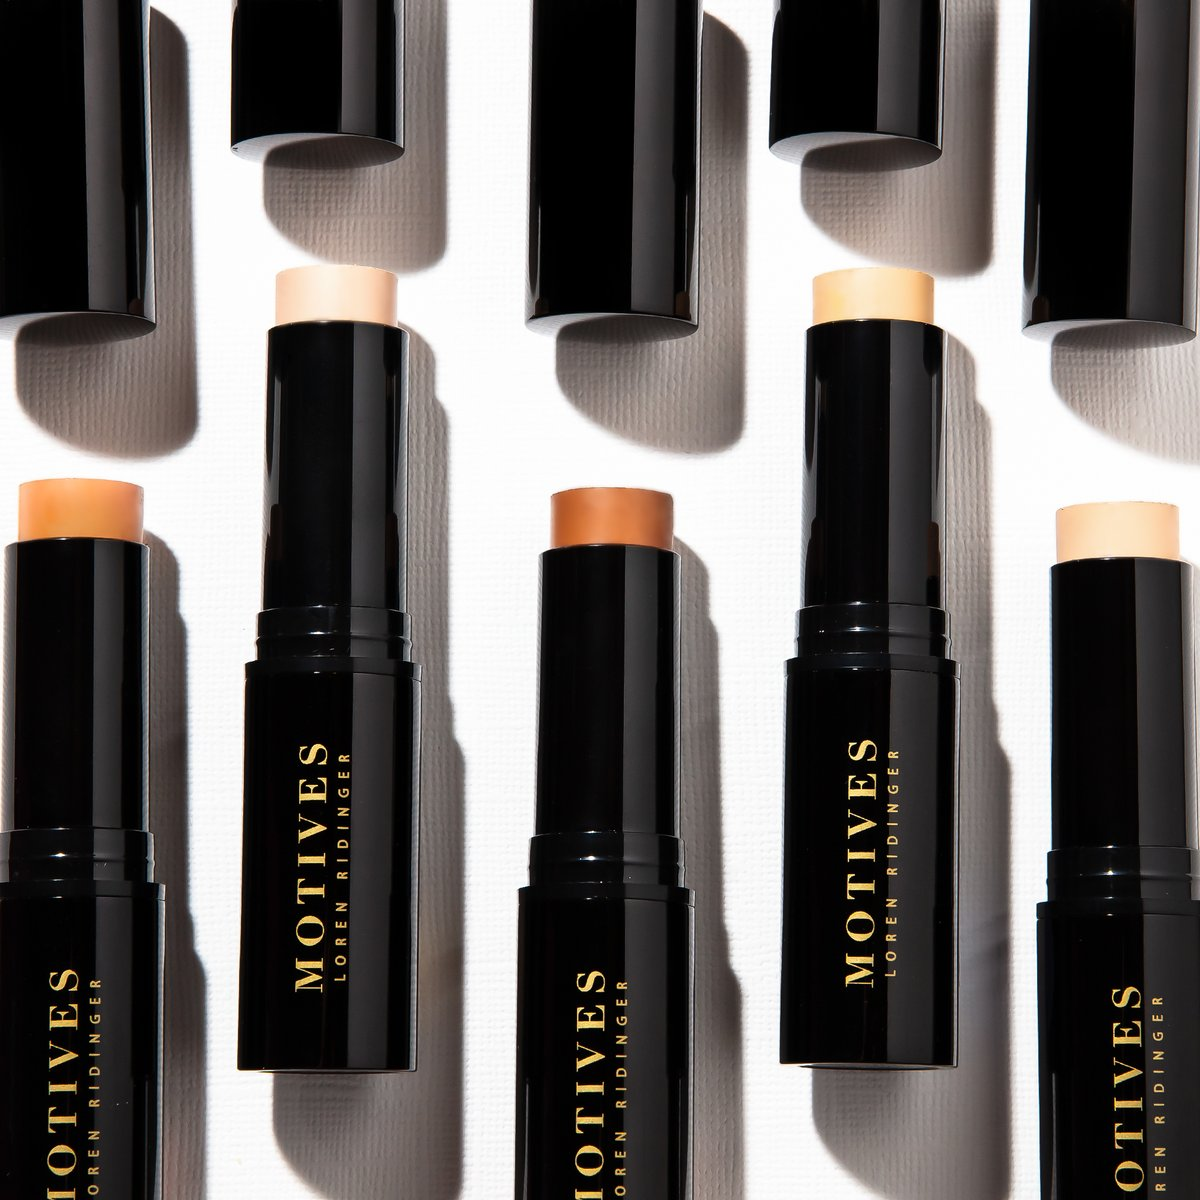 Foundation is not one shade fits all. Find your flawless match and experience our Flawless Face Stick Foundations by taking the fun shade finder quiz:  🖤